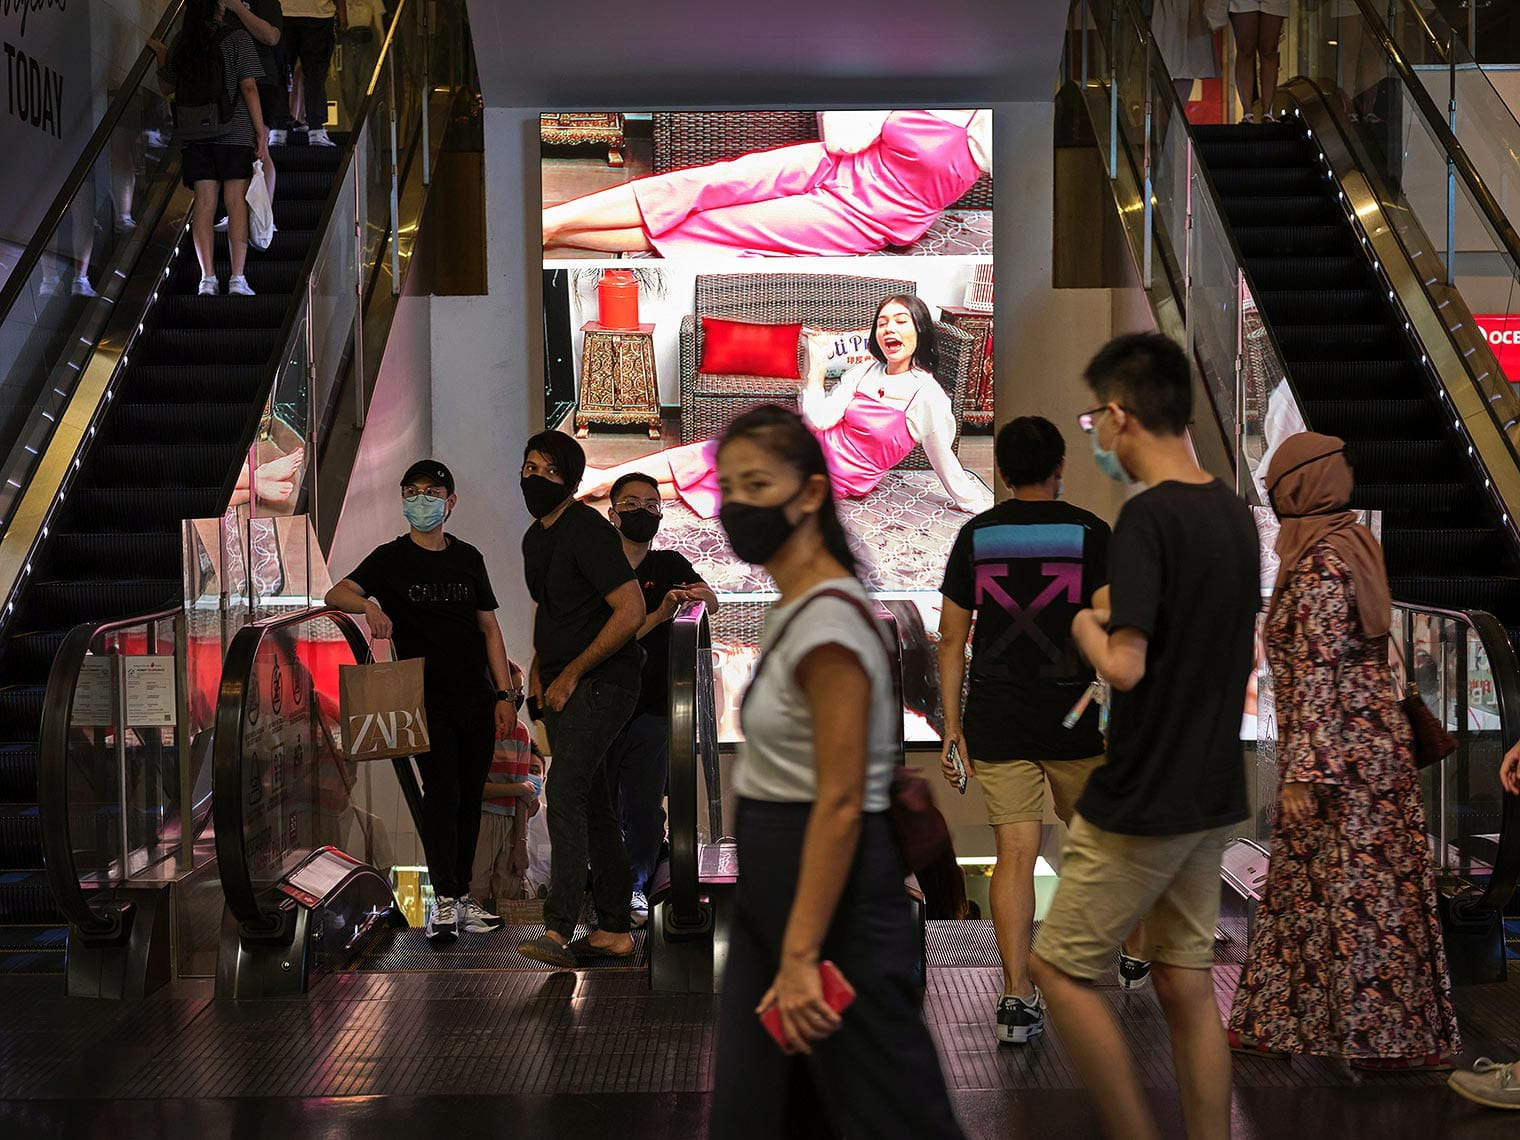 Various mask-wearing shoppers in front of a glowing display at 313@somerset mall in Singapore